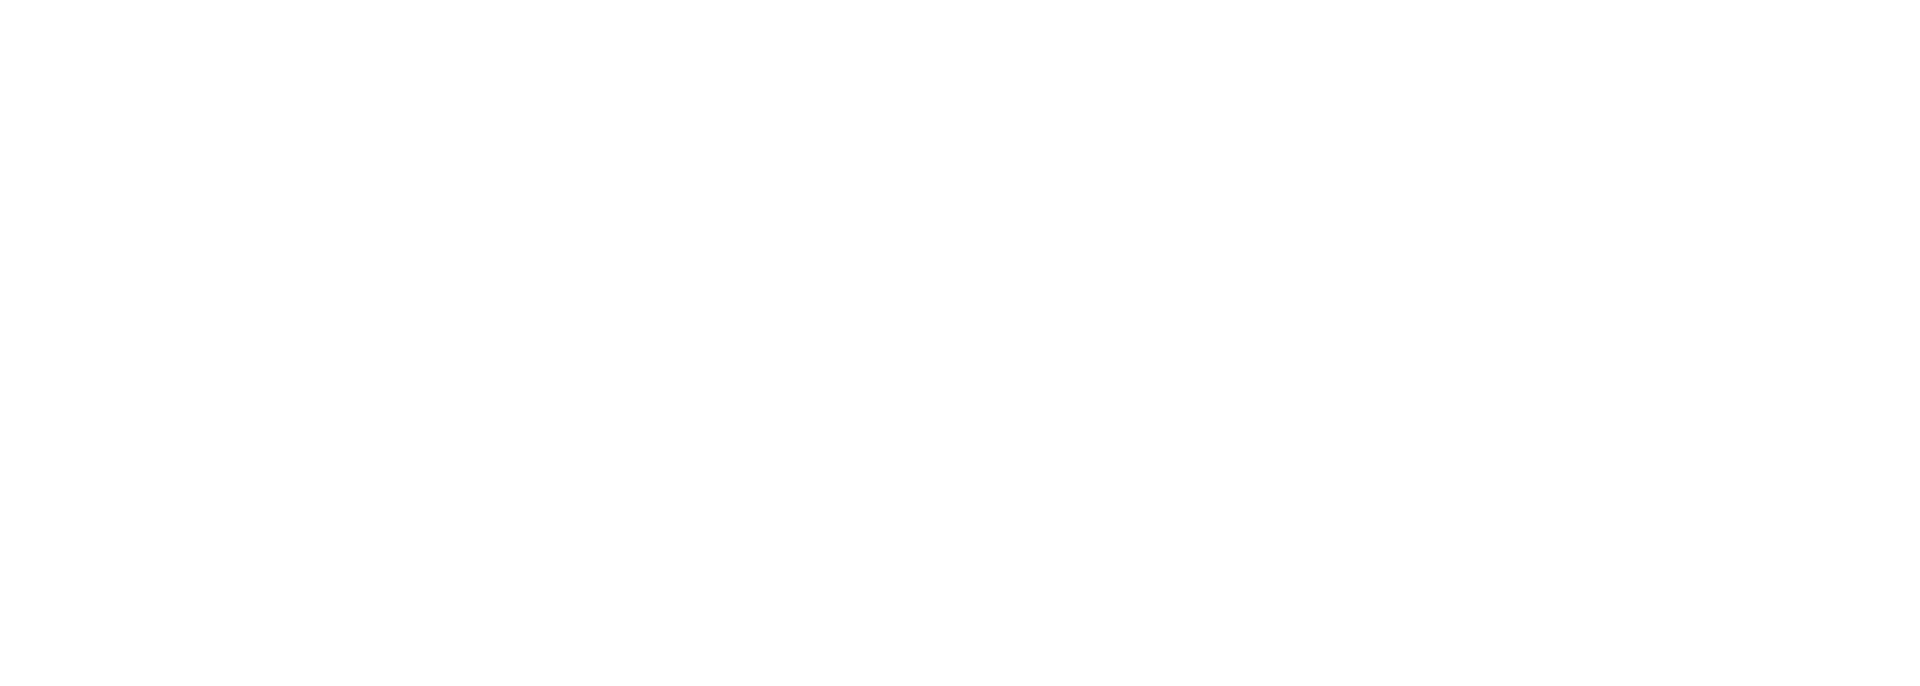 5 million people start a new job every month